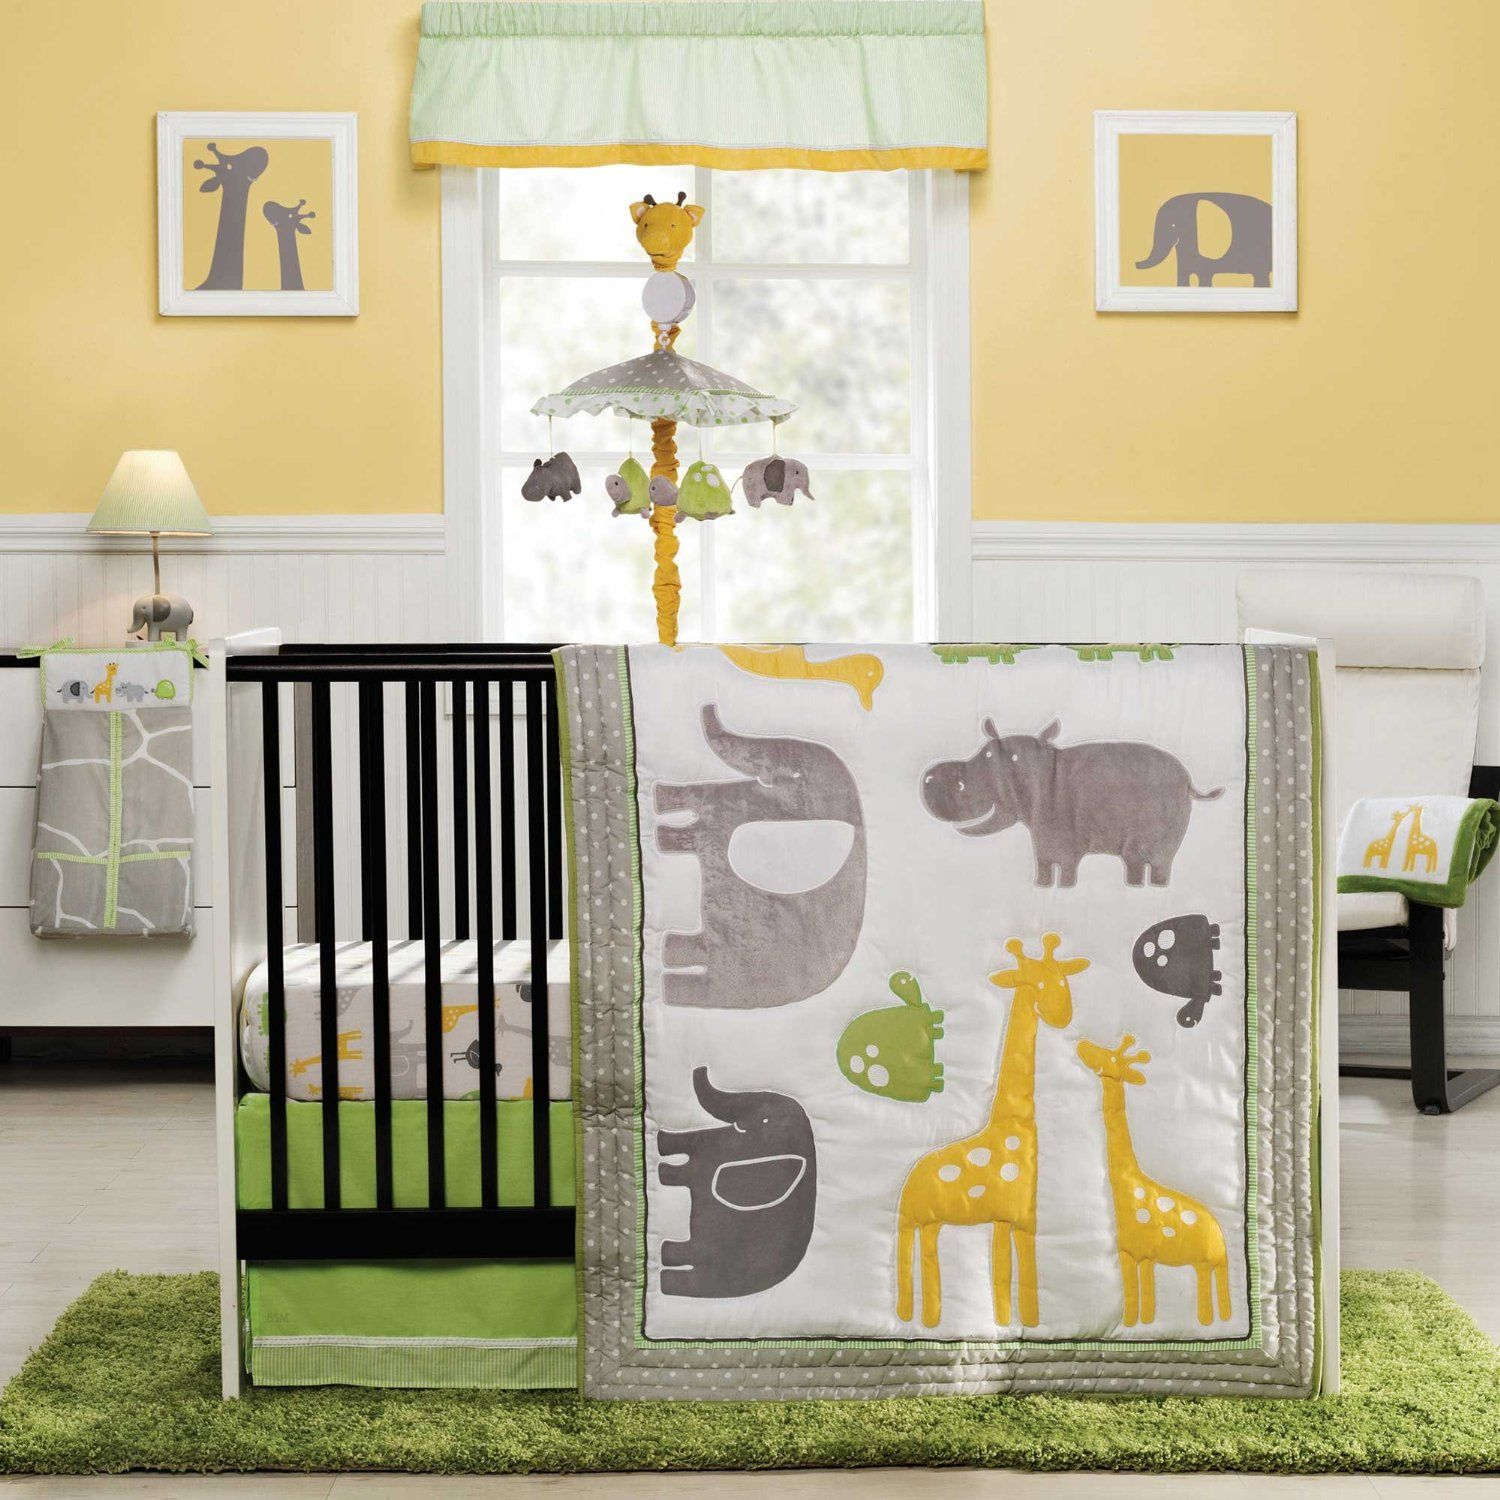 Amazon.com : Zoo Animals 4 Piece Baby Crib Bedding Set by Carters ...